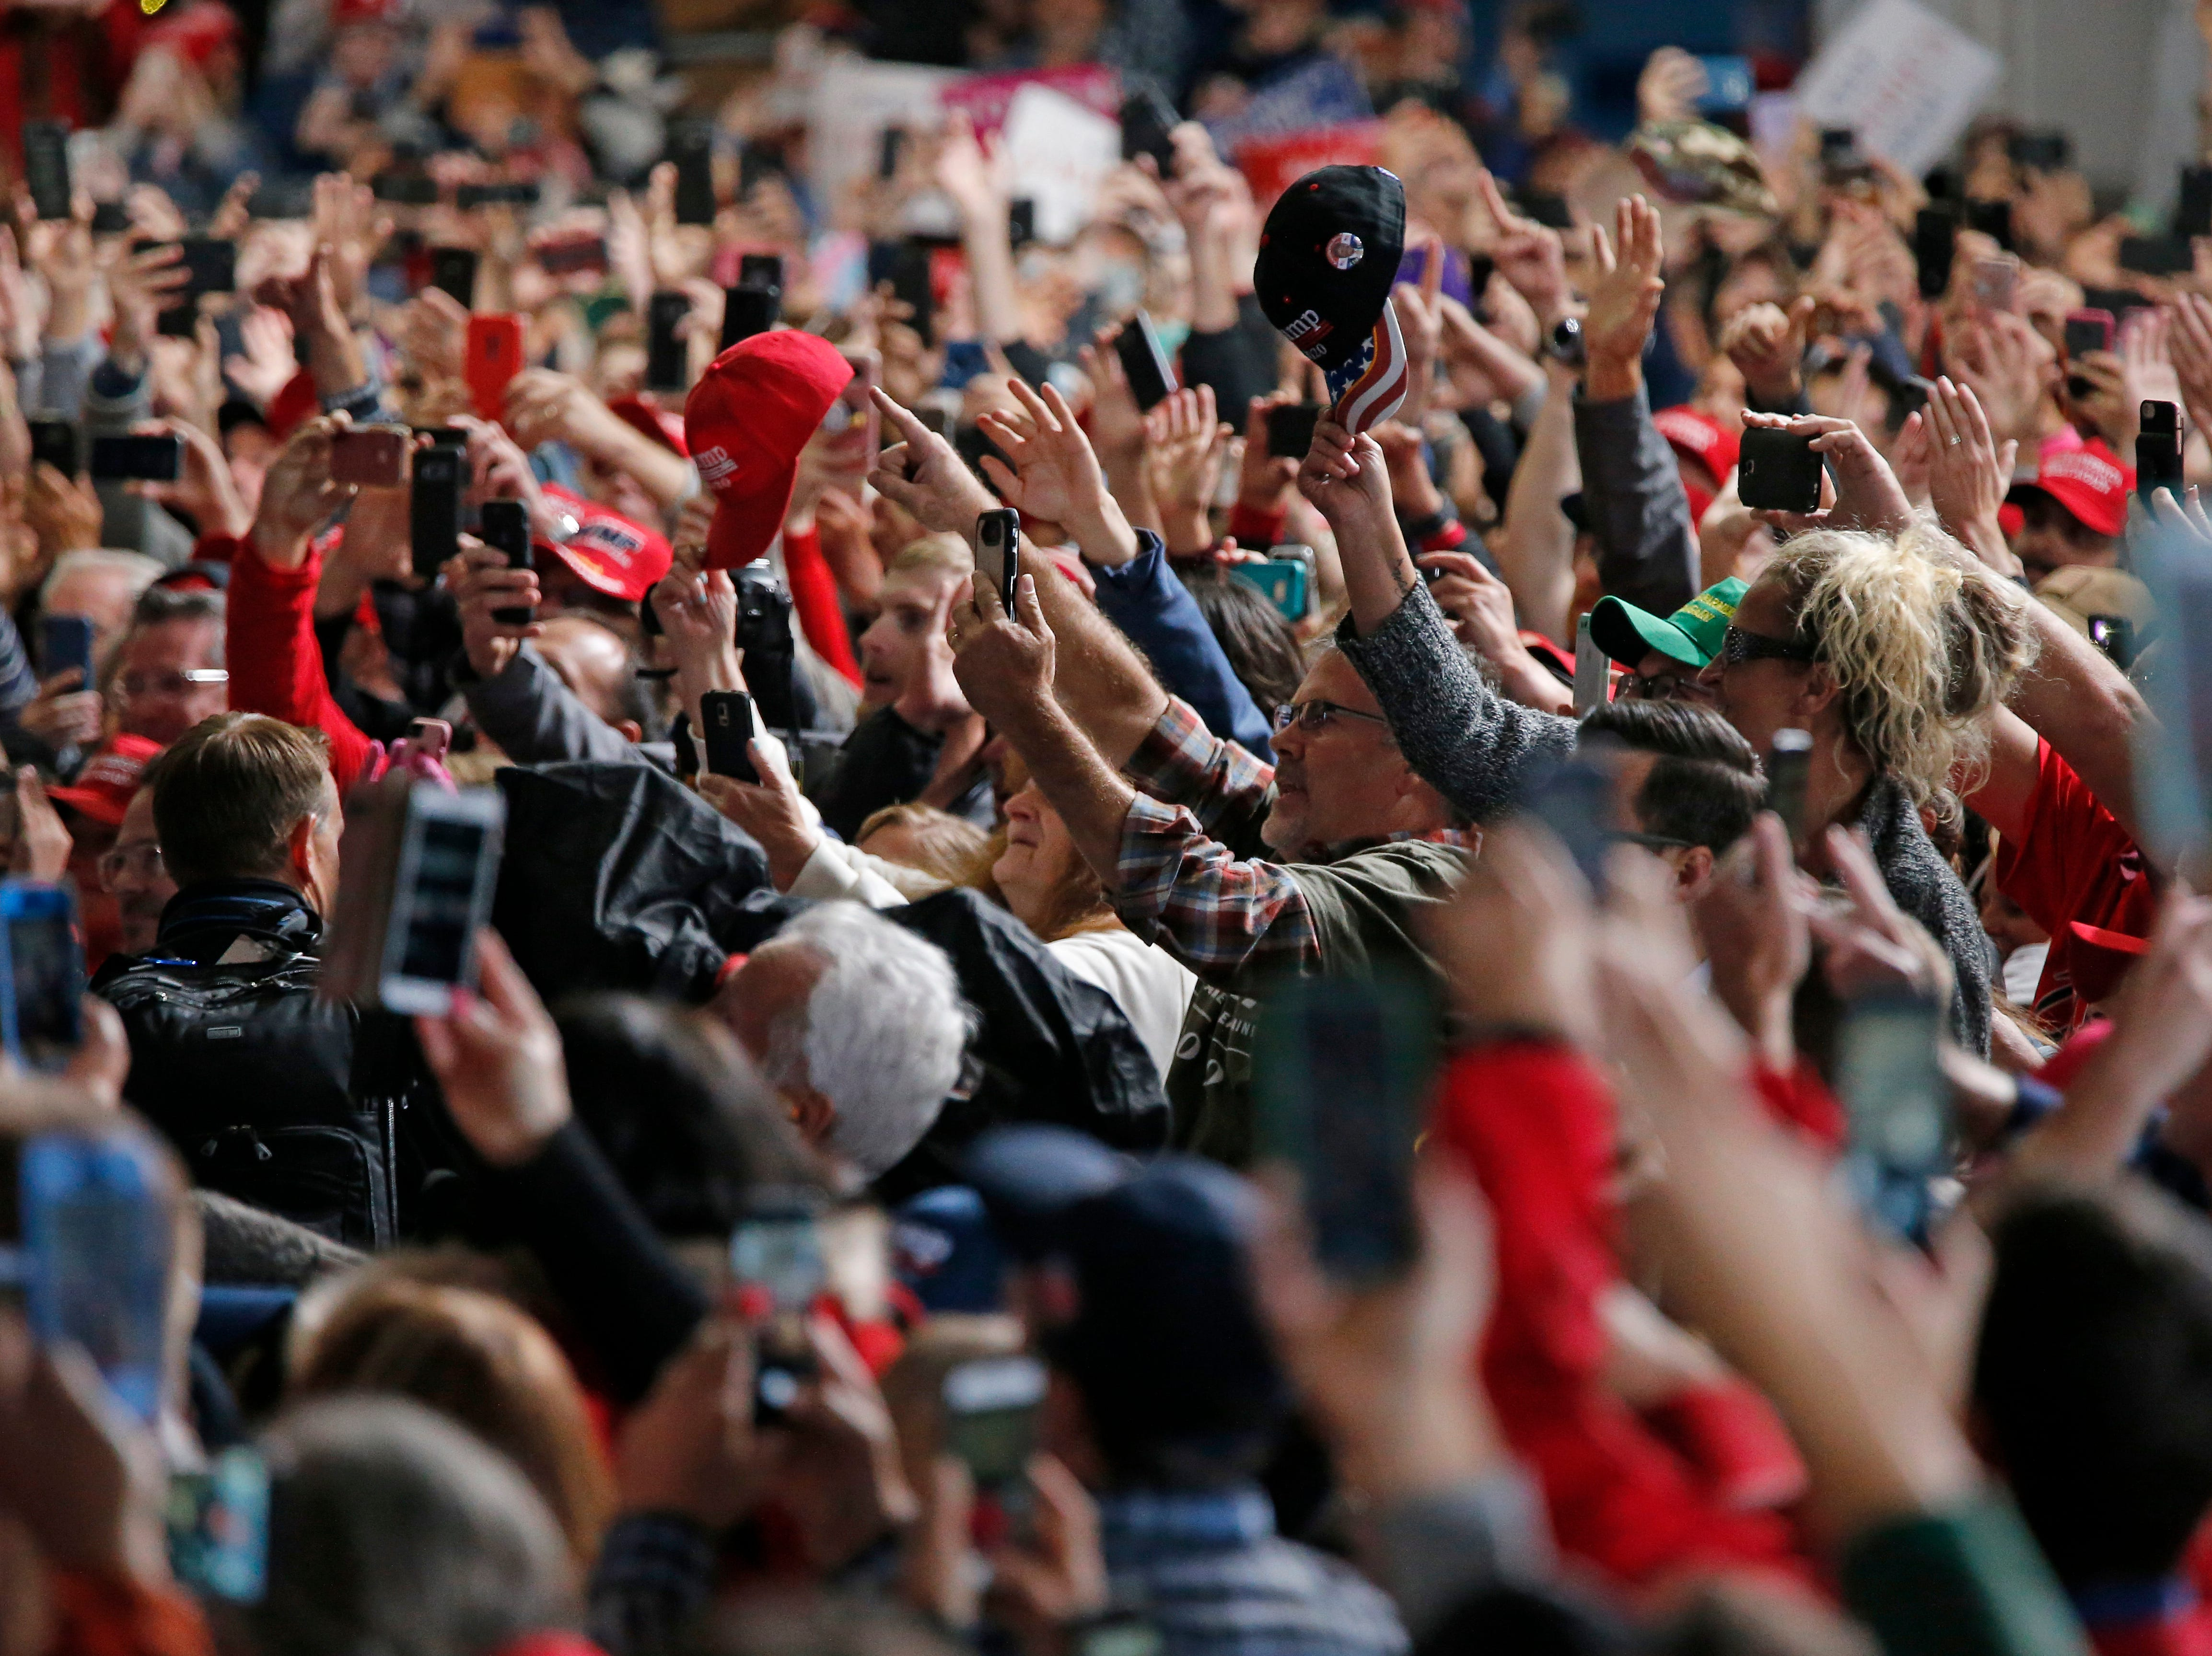 Supporters raise their phones and hands as President Donald Trump takes the stage during a Make America Great Again rally at the warren County Fair Grounds in Lebanon, Ohio, on Friday, Oct. 12, 2018.